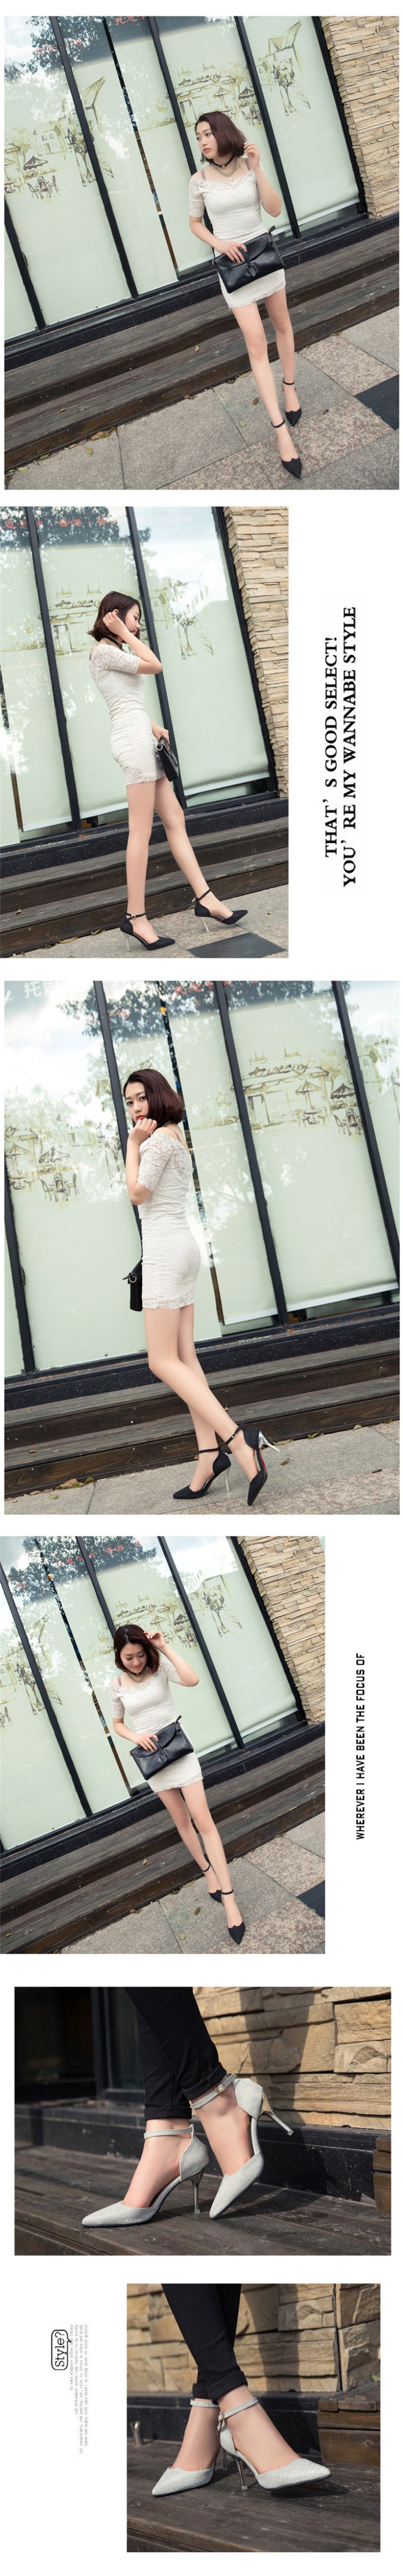 2016 New Hot Sale New European Fashion Sequins 4 Color High Quality Pointed Toe Women Pumps HSB23 (7)